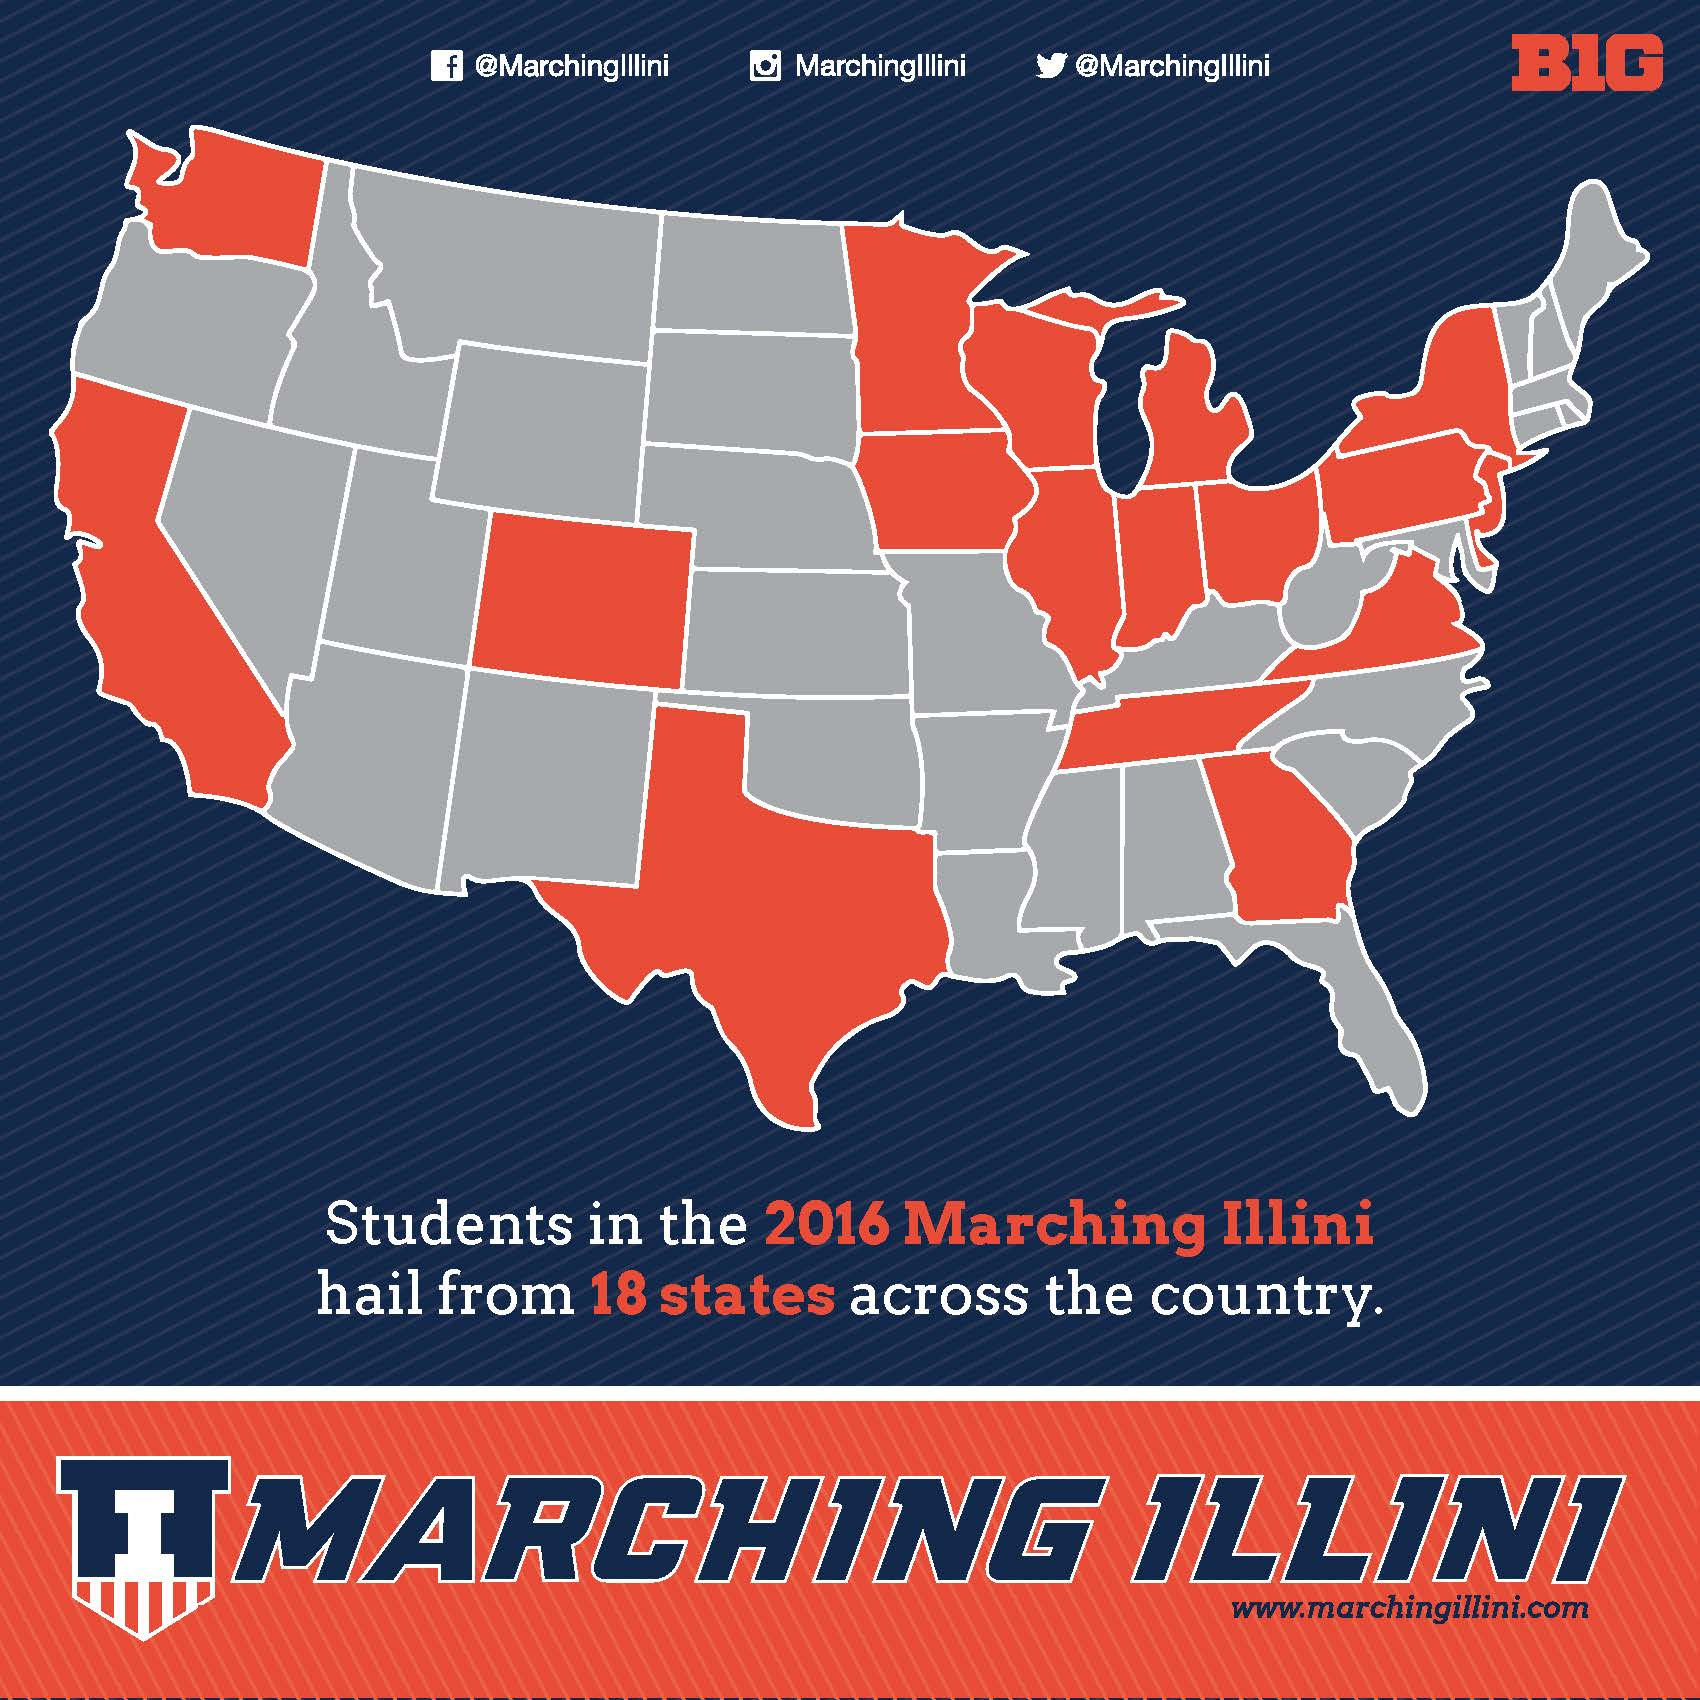 Marching Illini Across America